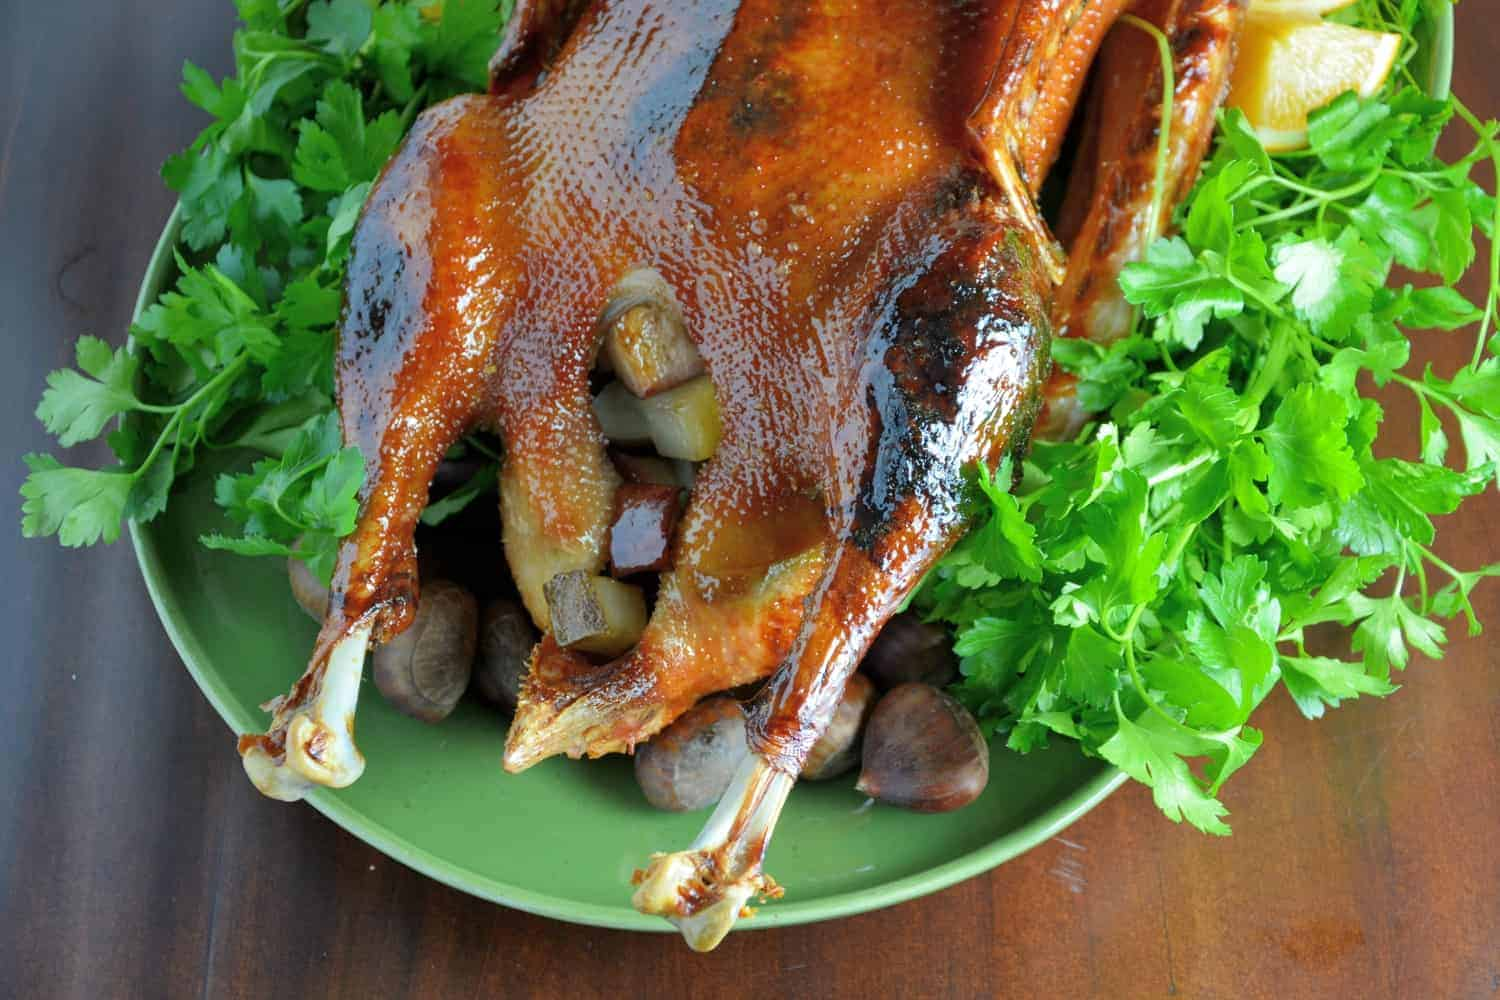 Roasted goose on a green plate with lettuce - Christmas main dishes